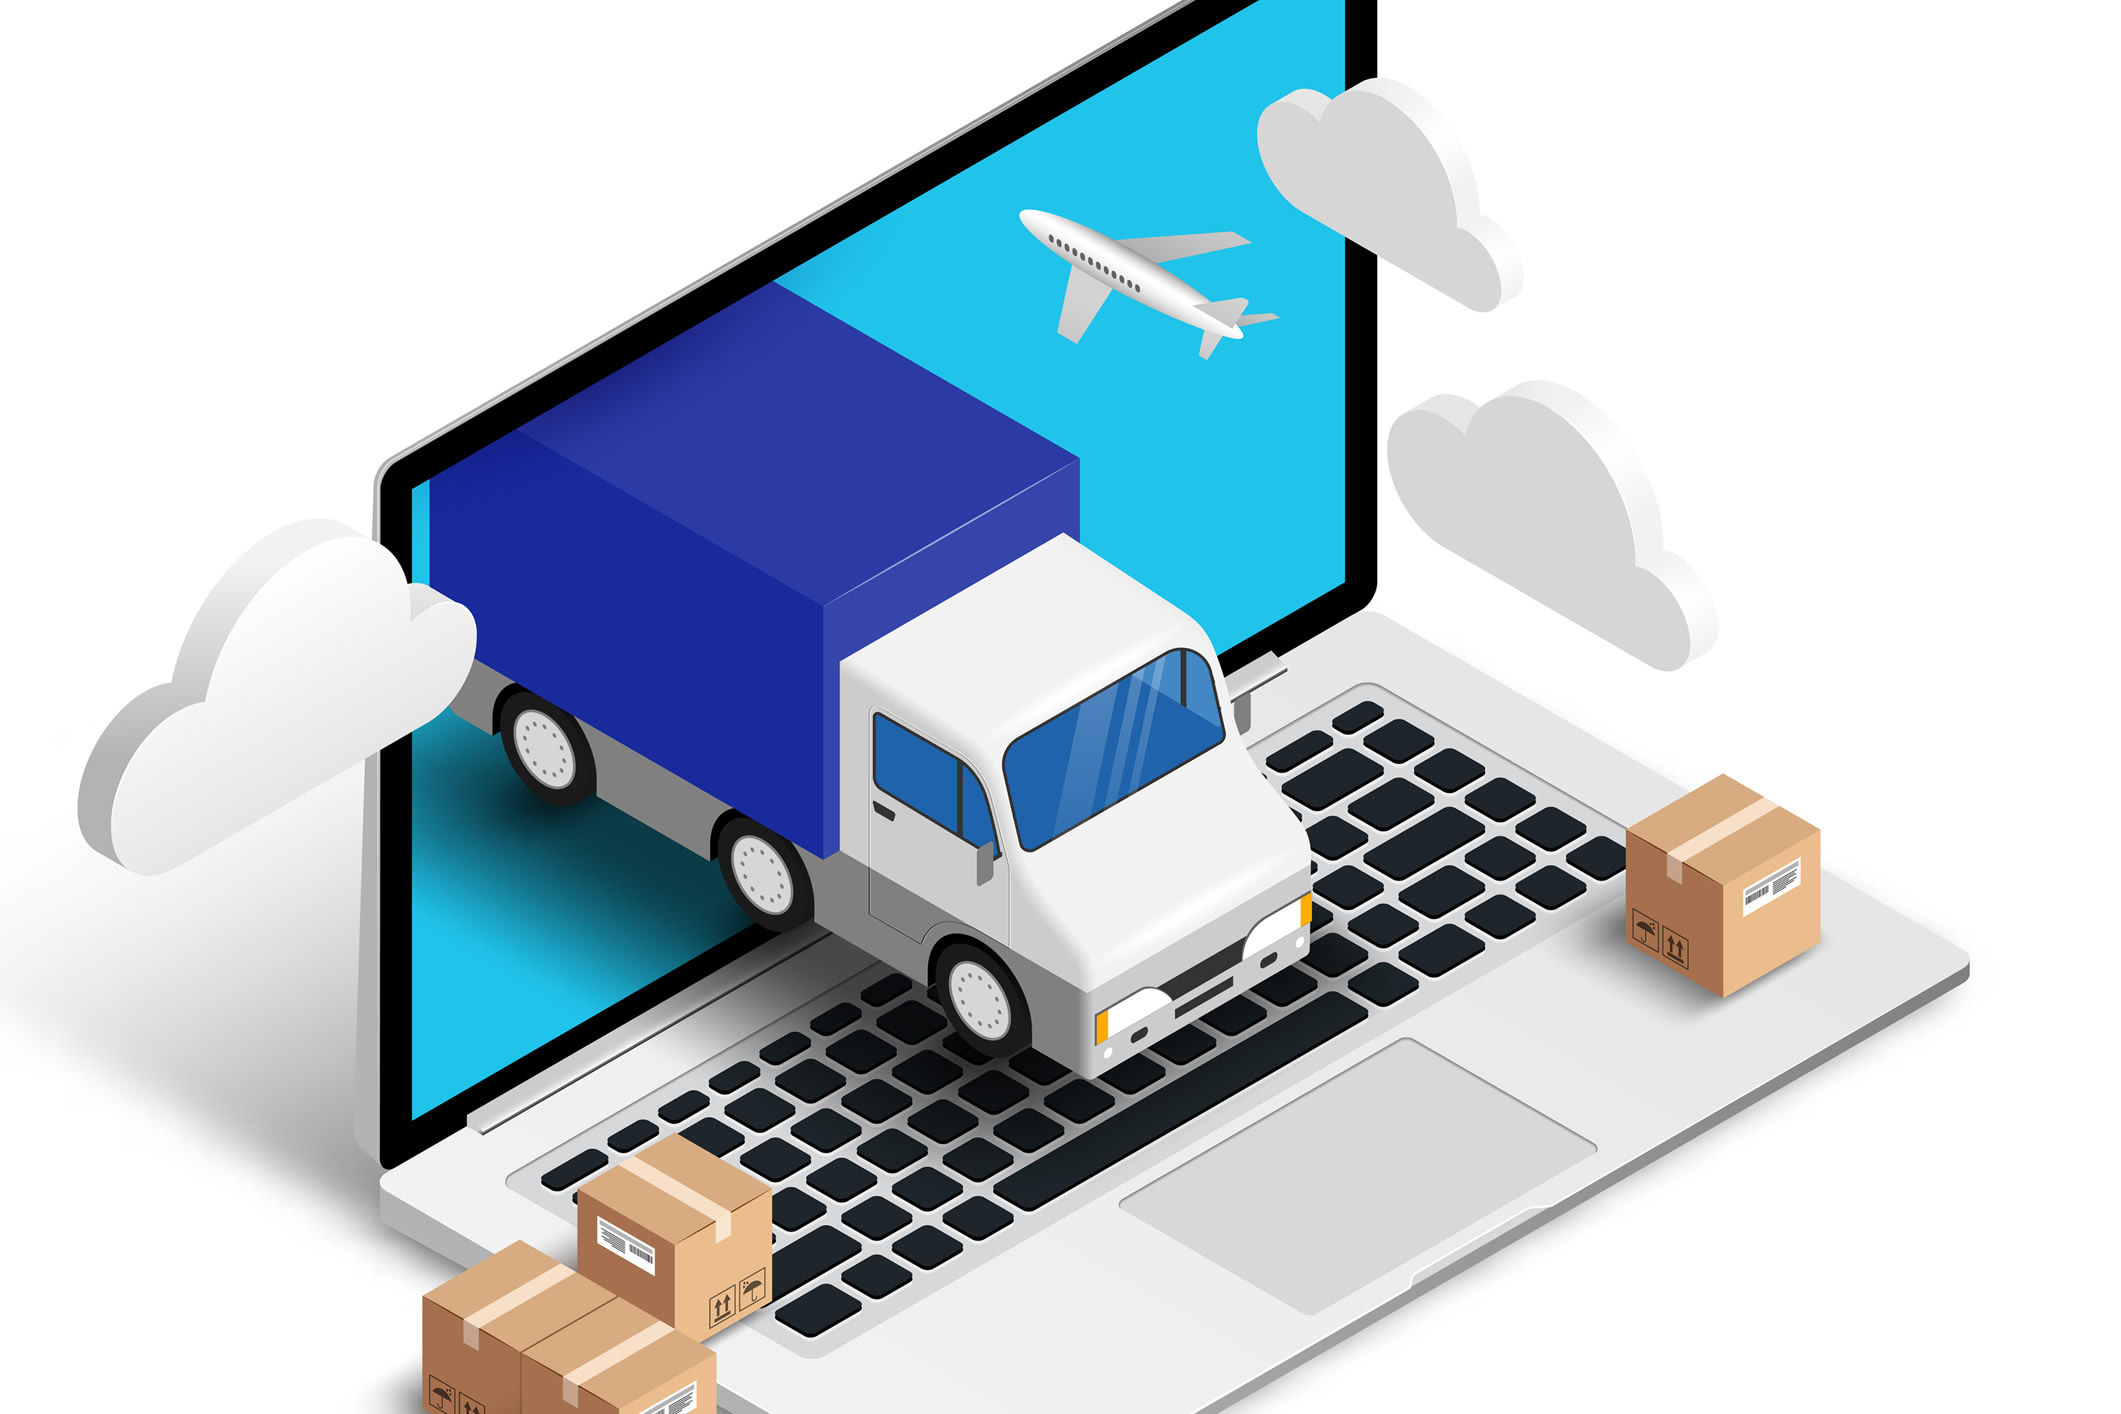 Benefits of using 3pl over DIY shipping